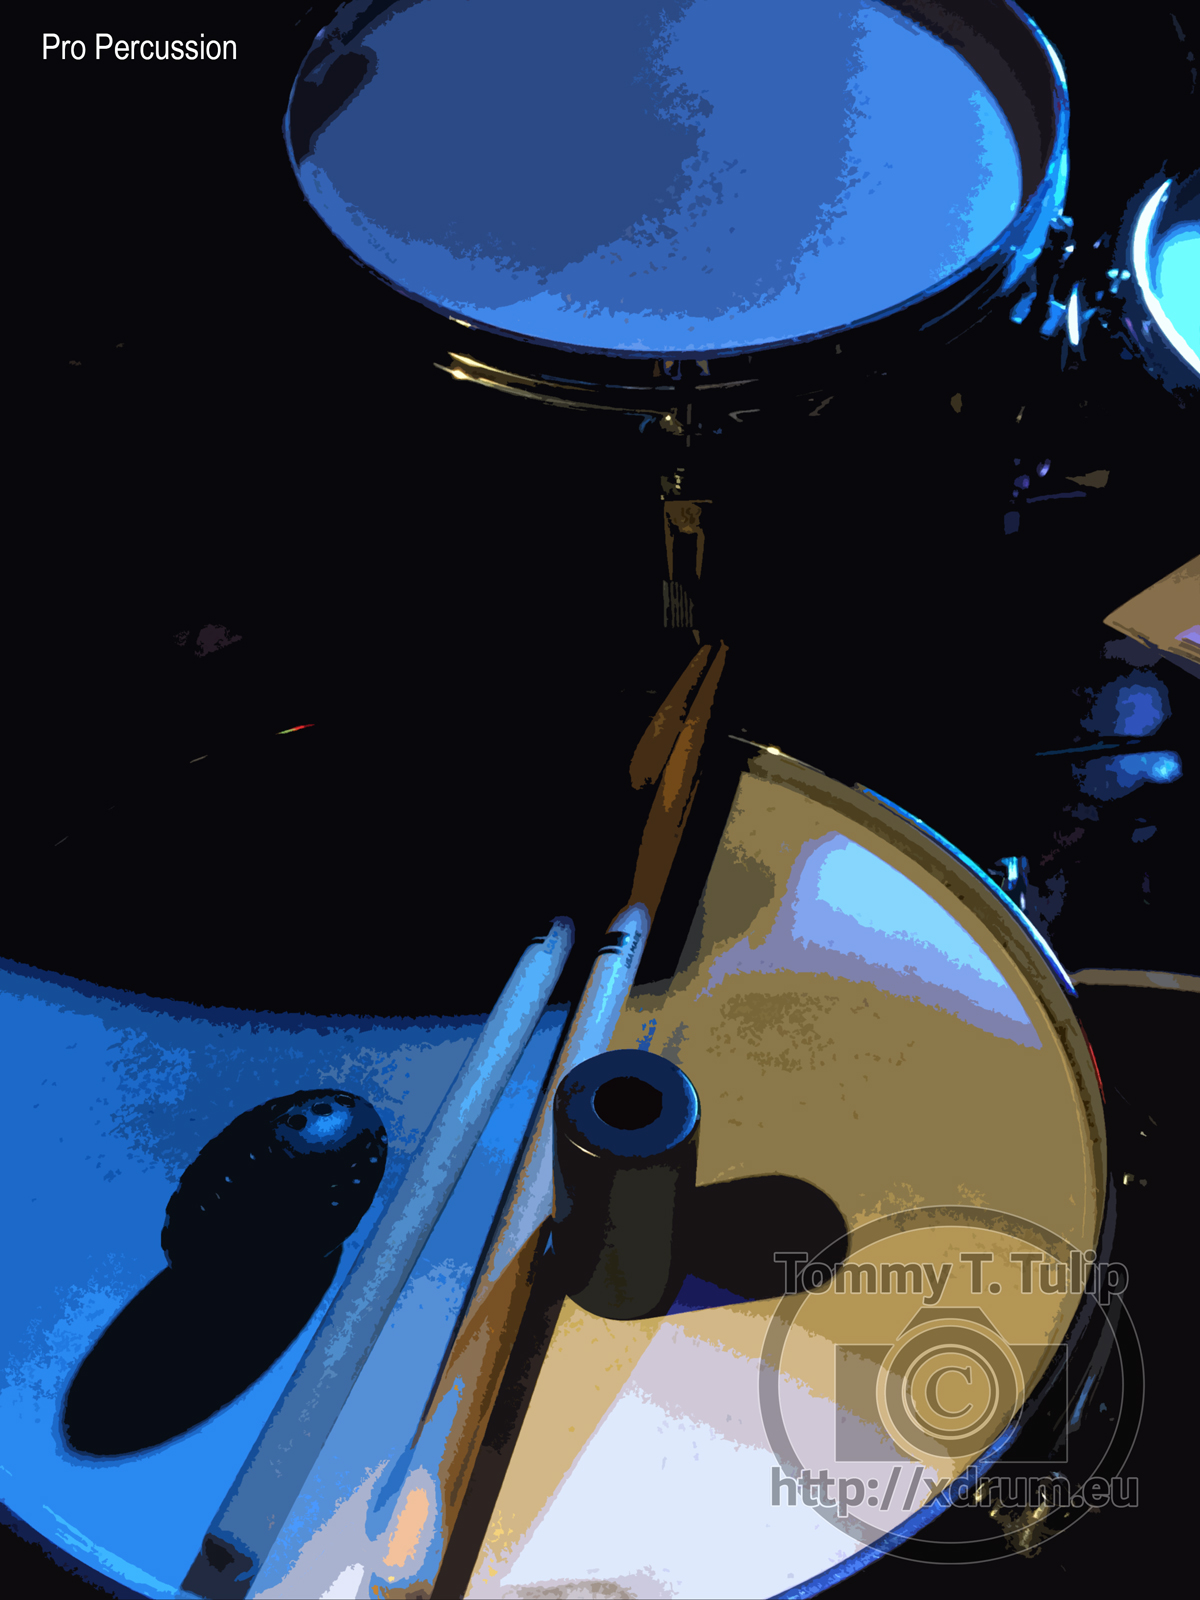 IMG_4483_Pro.Percussion